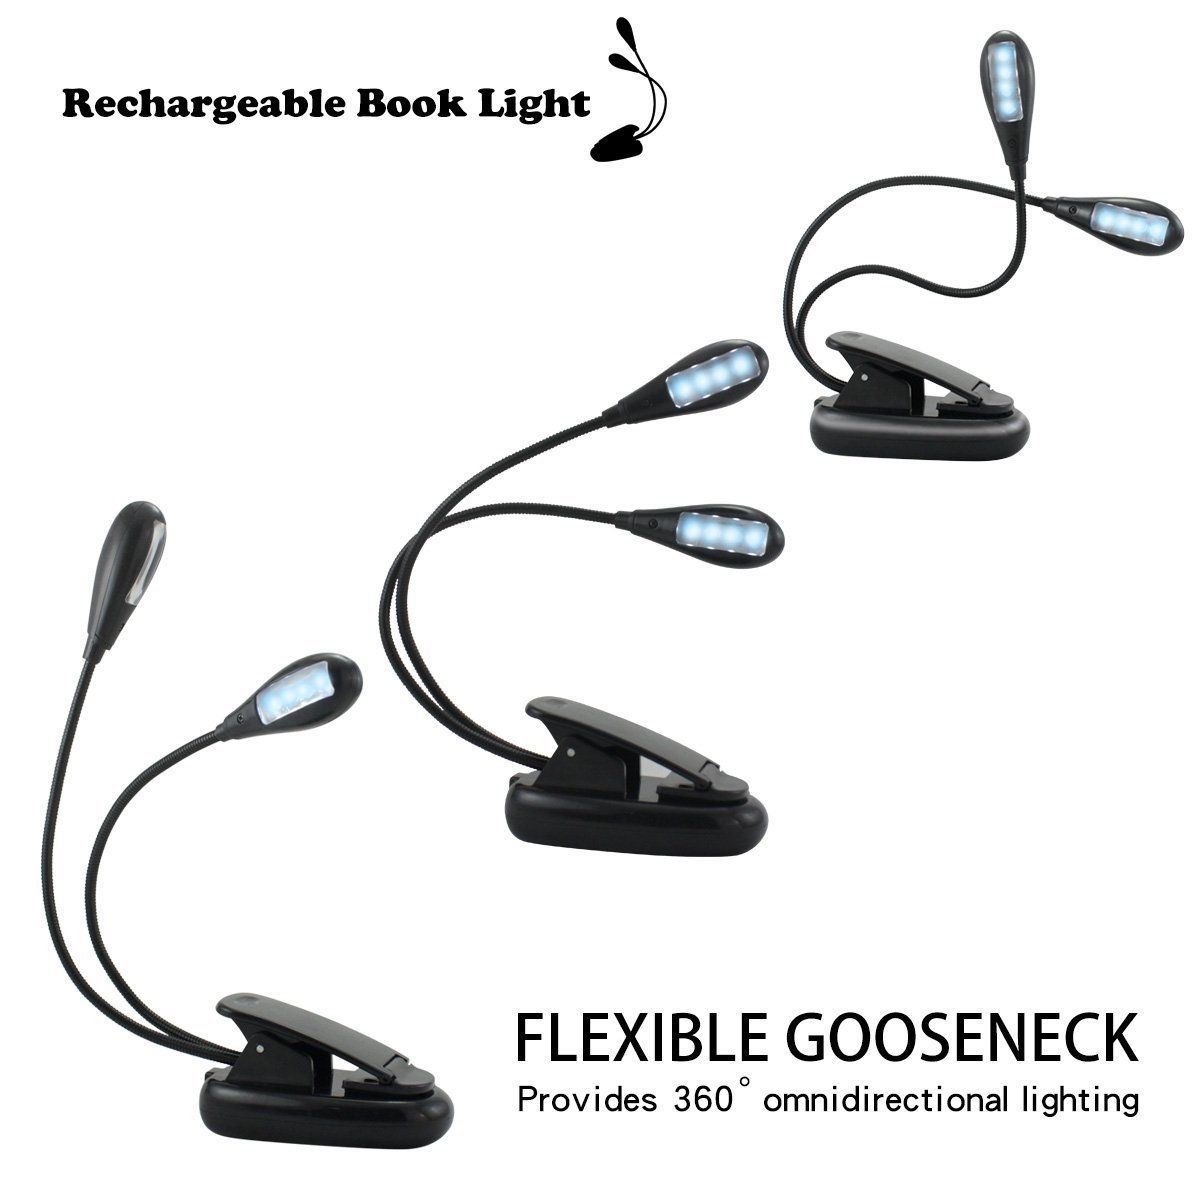 rechargeable book light 8 led usb double arms clip on. Black Bedroom Furniture Sets. Home Design Ideas